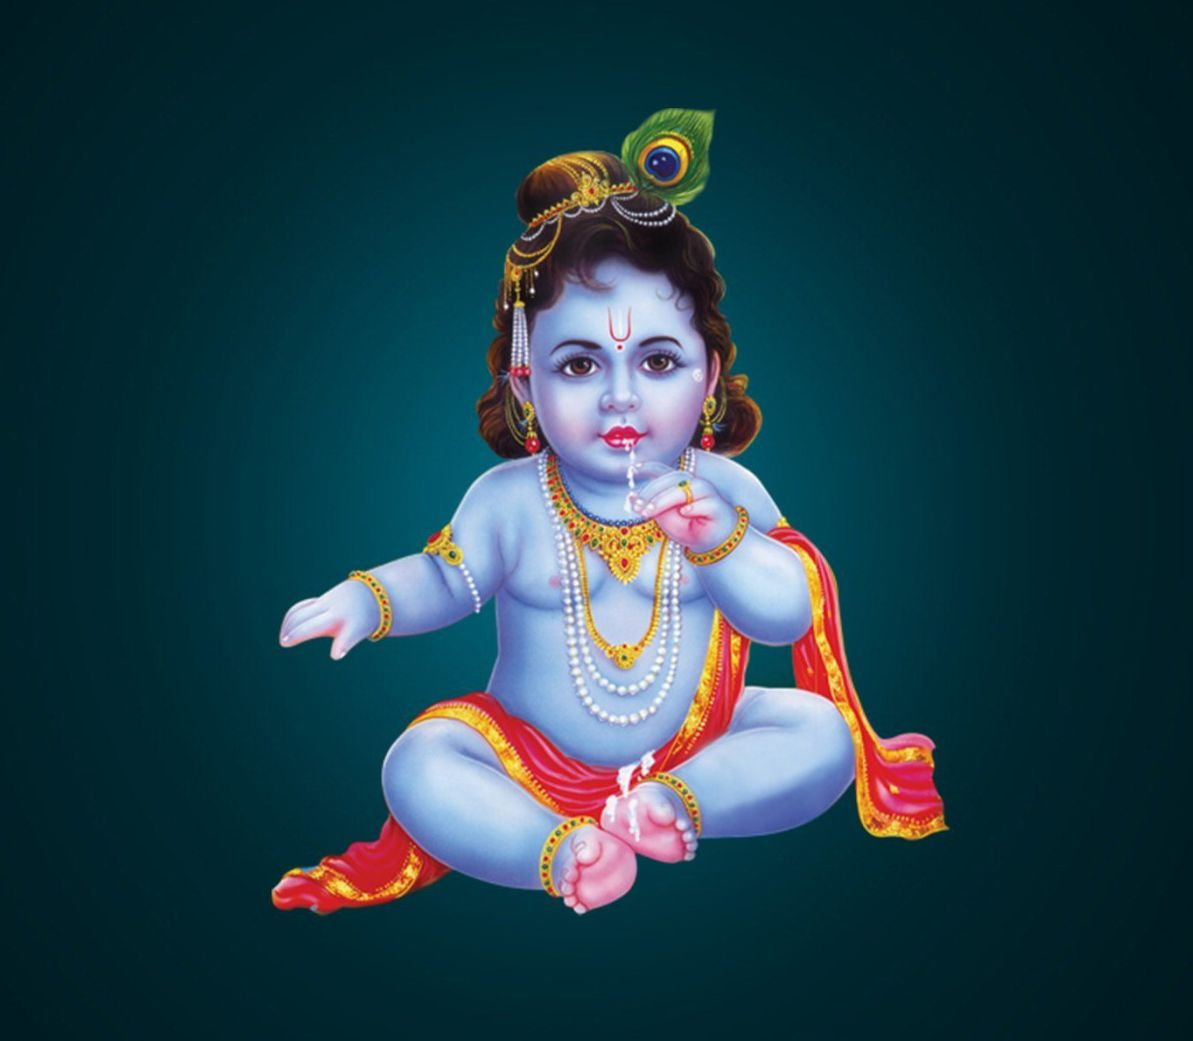 Bhagwan Photo HD  IMAGES, GIF, ANIMATED GIF, WALLPAPER, STICKER FOR WHATSAPP & FACEBOOK